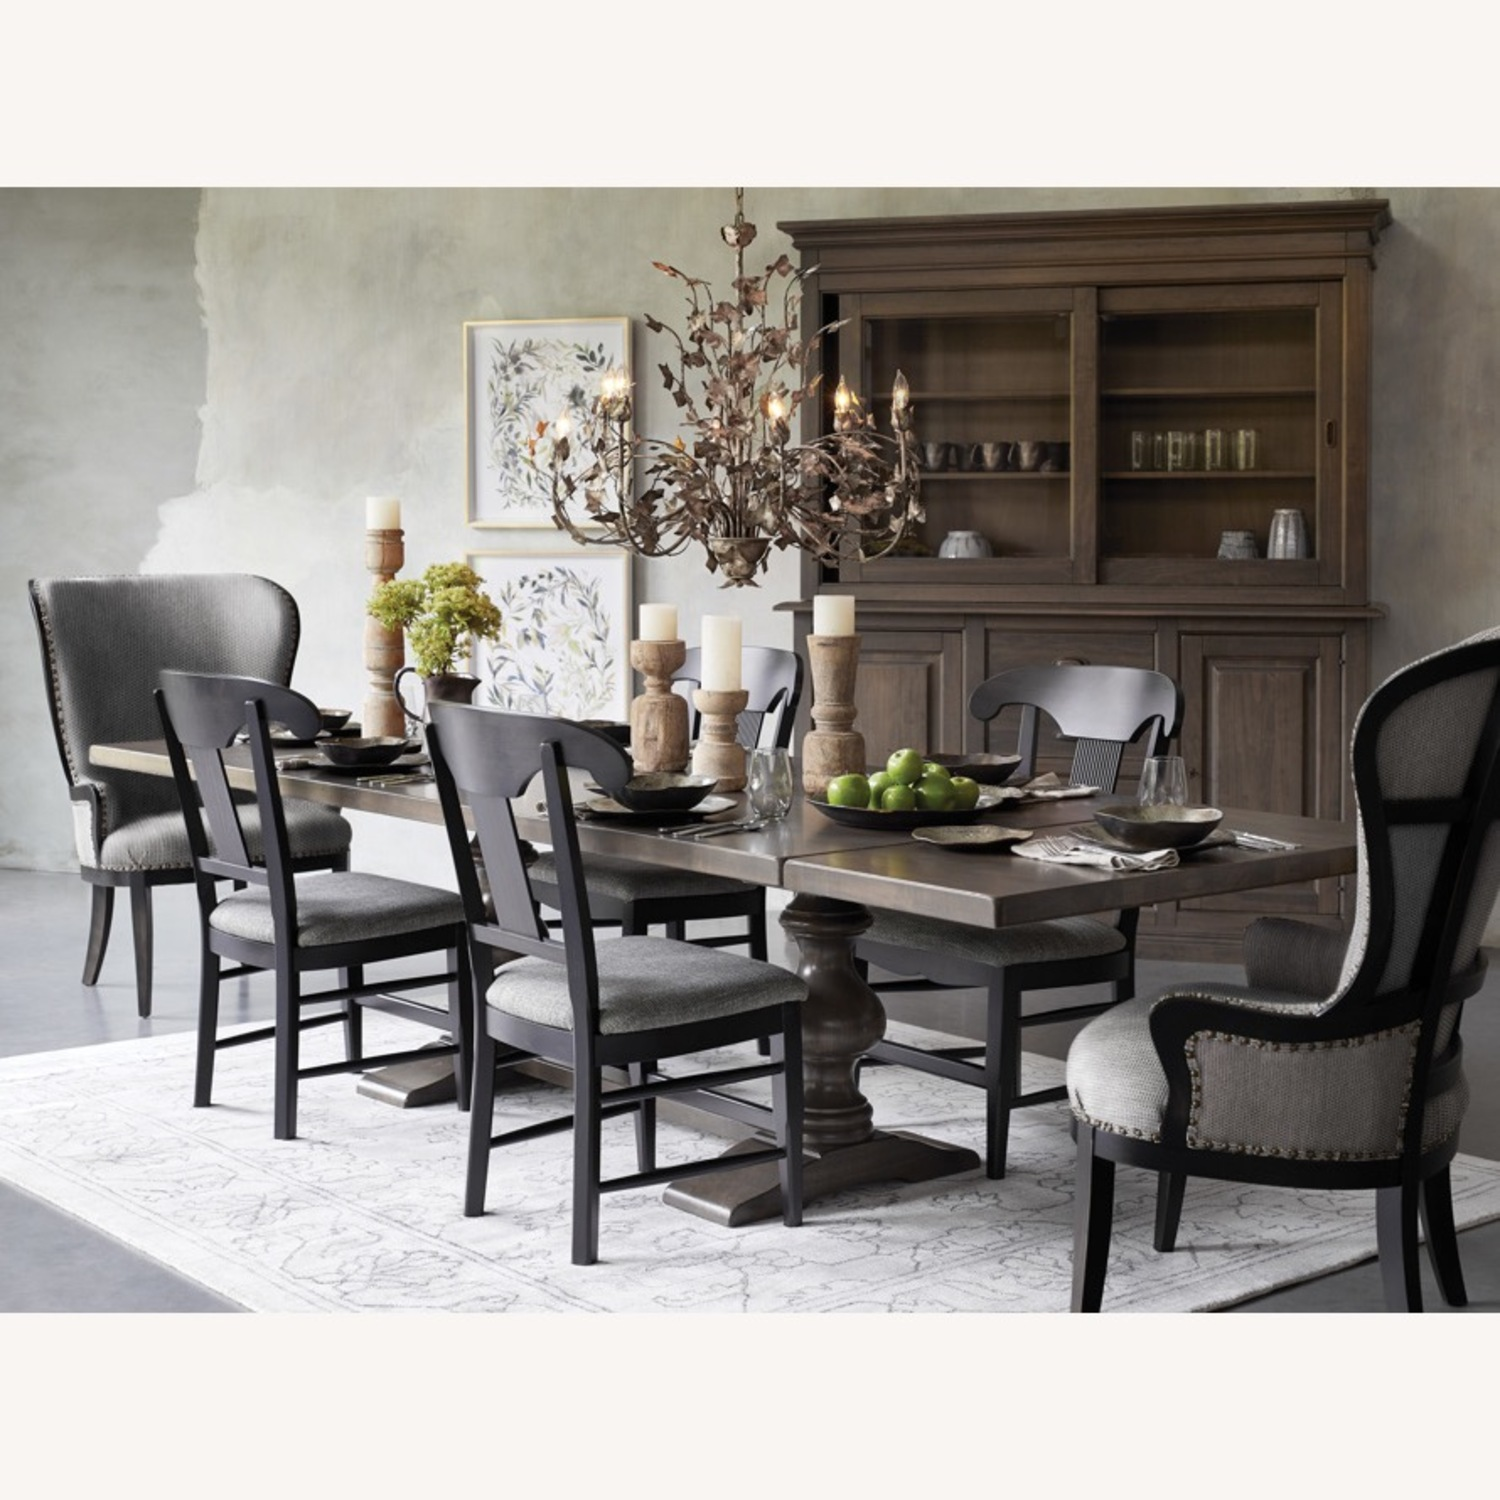 Arhaus Tuscany Extension Dining Table - image-4